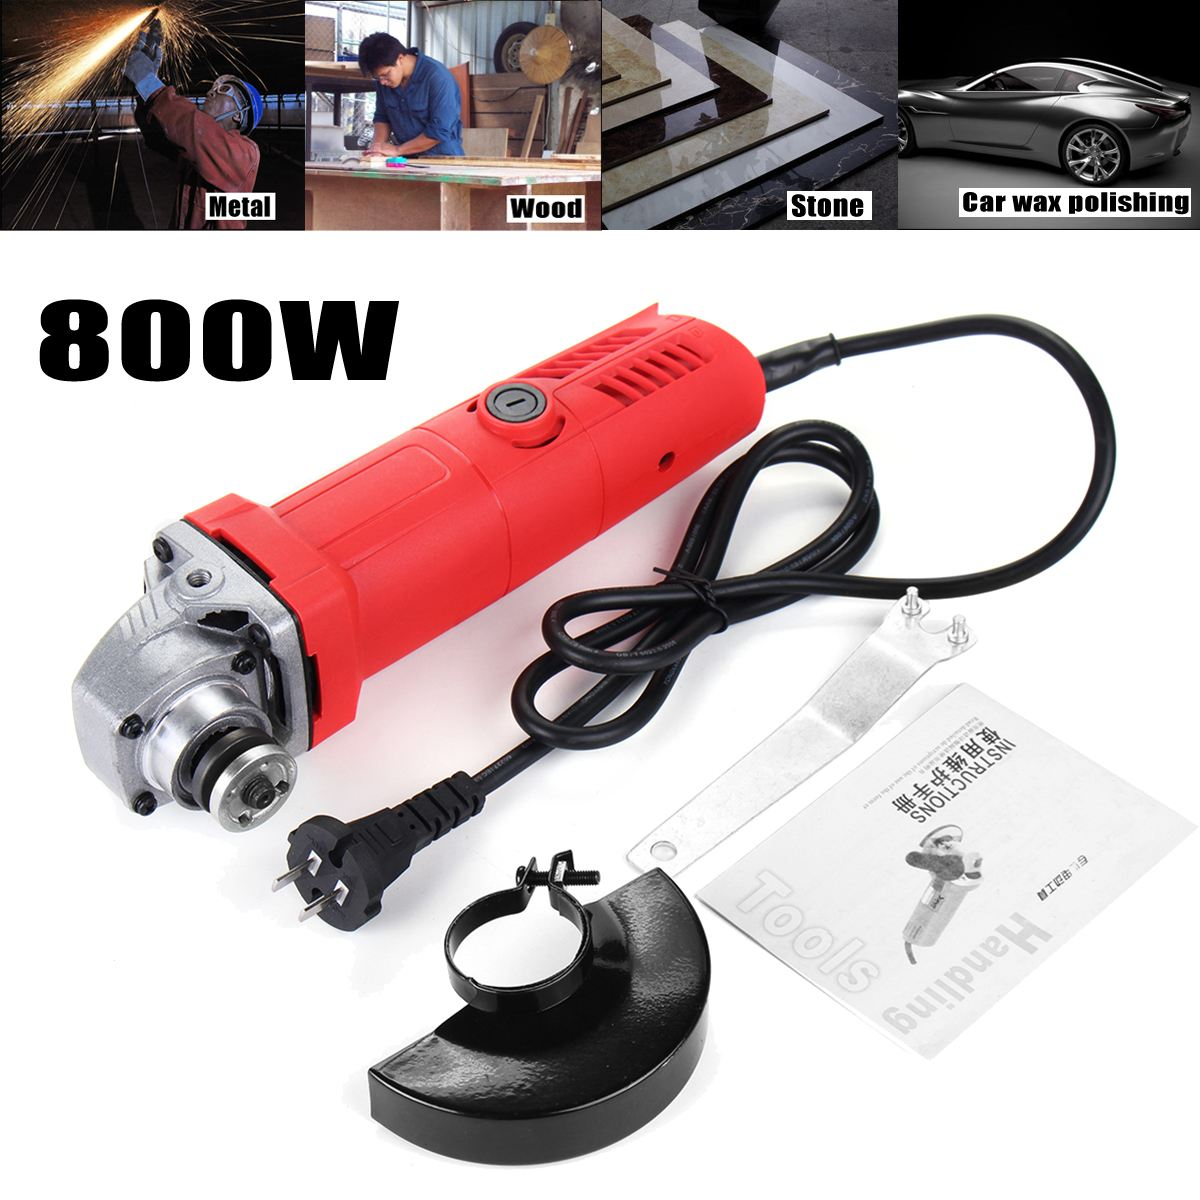 100mm 800W 220V Portable Electric Angle Grinder Muti-Function Household Polish Machine Grinding Cutting Polishing Machine